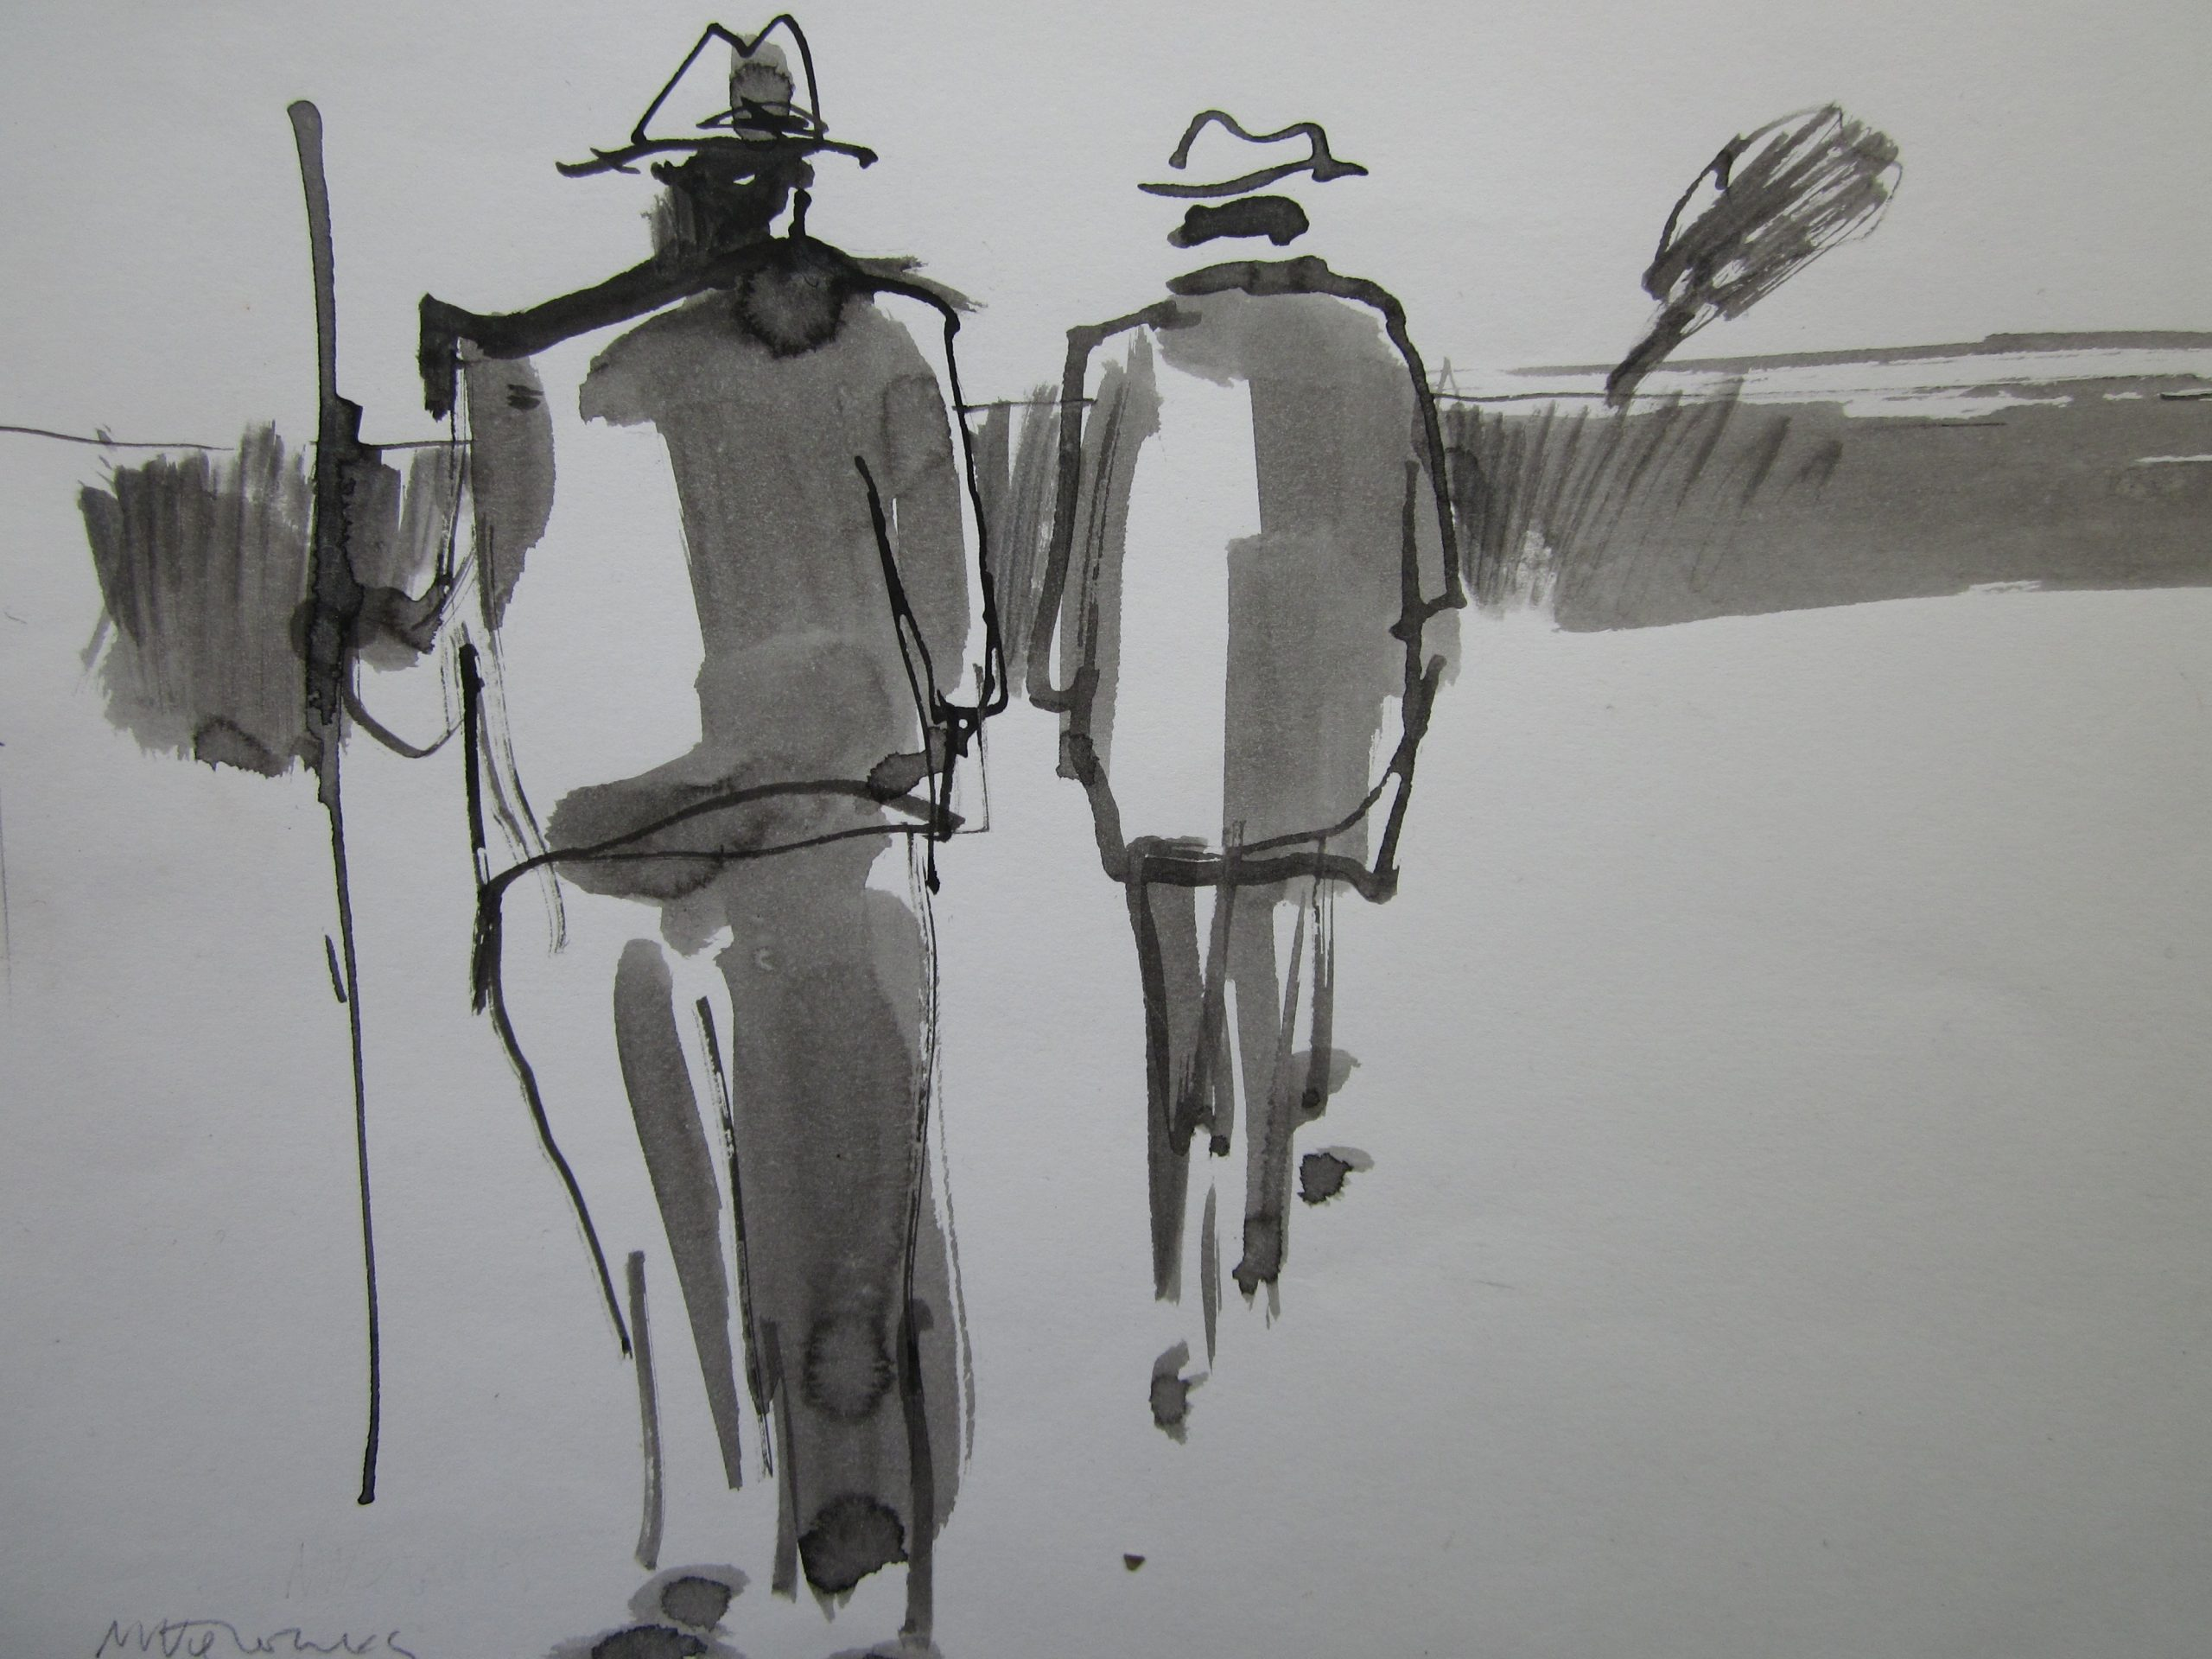 Mike Jones - Figures in Landscape I - Ink Wash - 7.5 x 9.5 inches